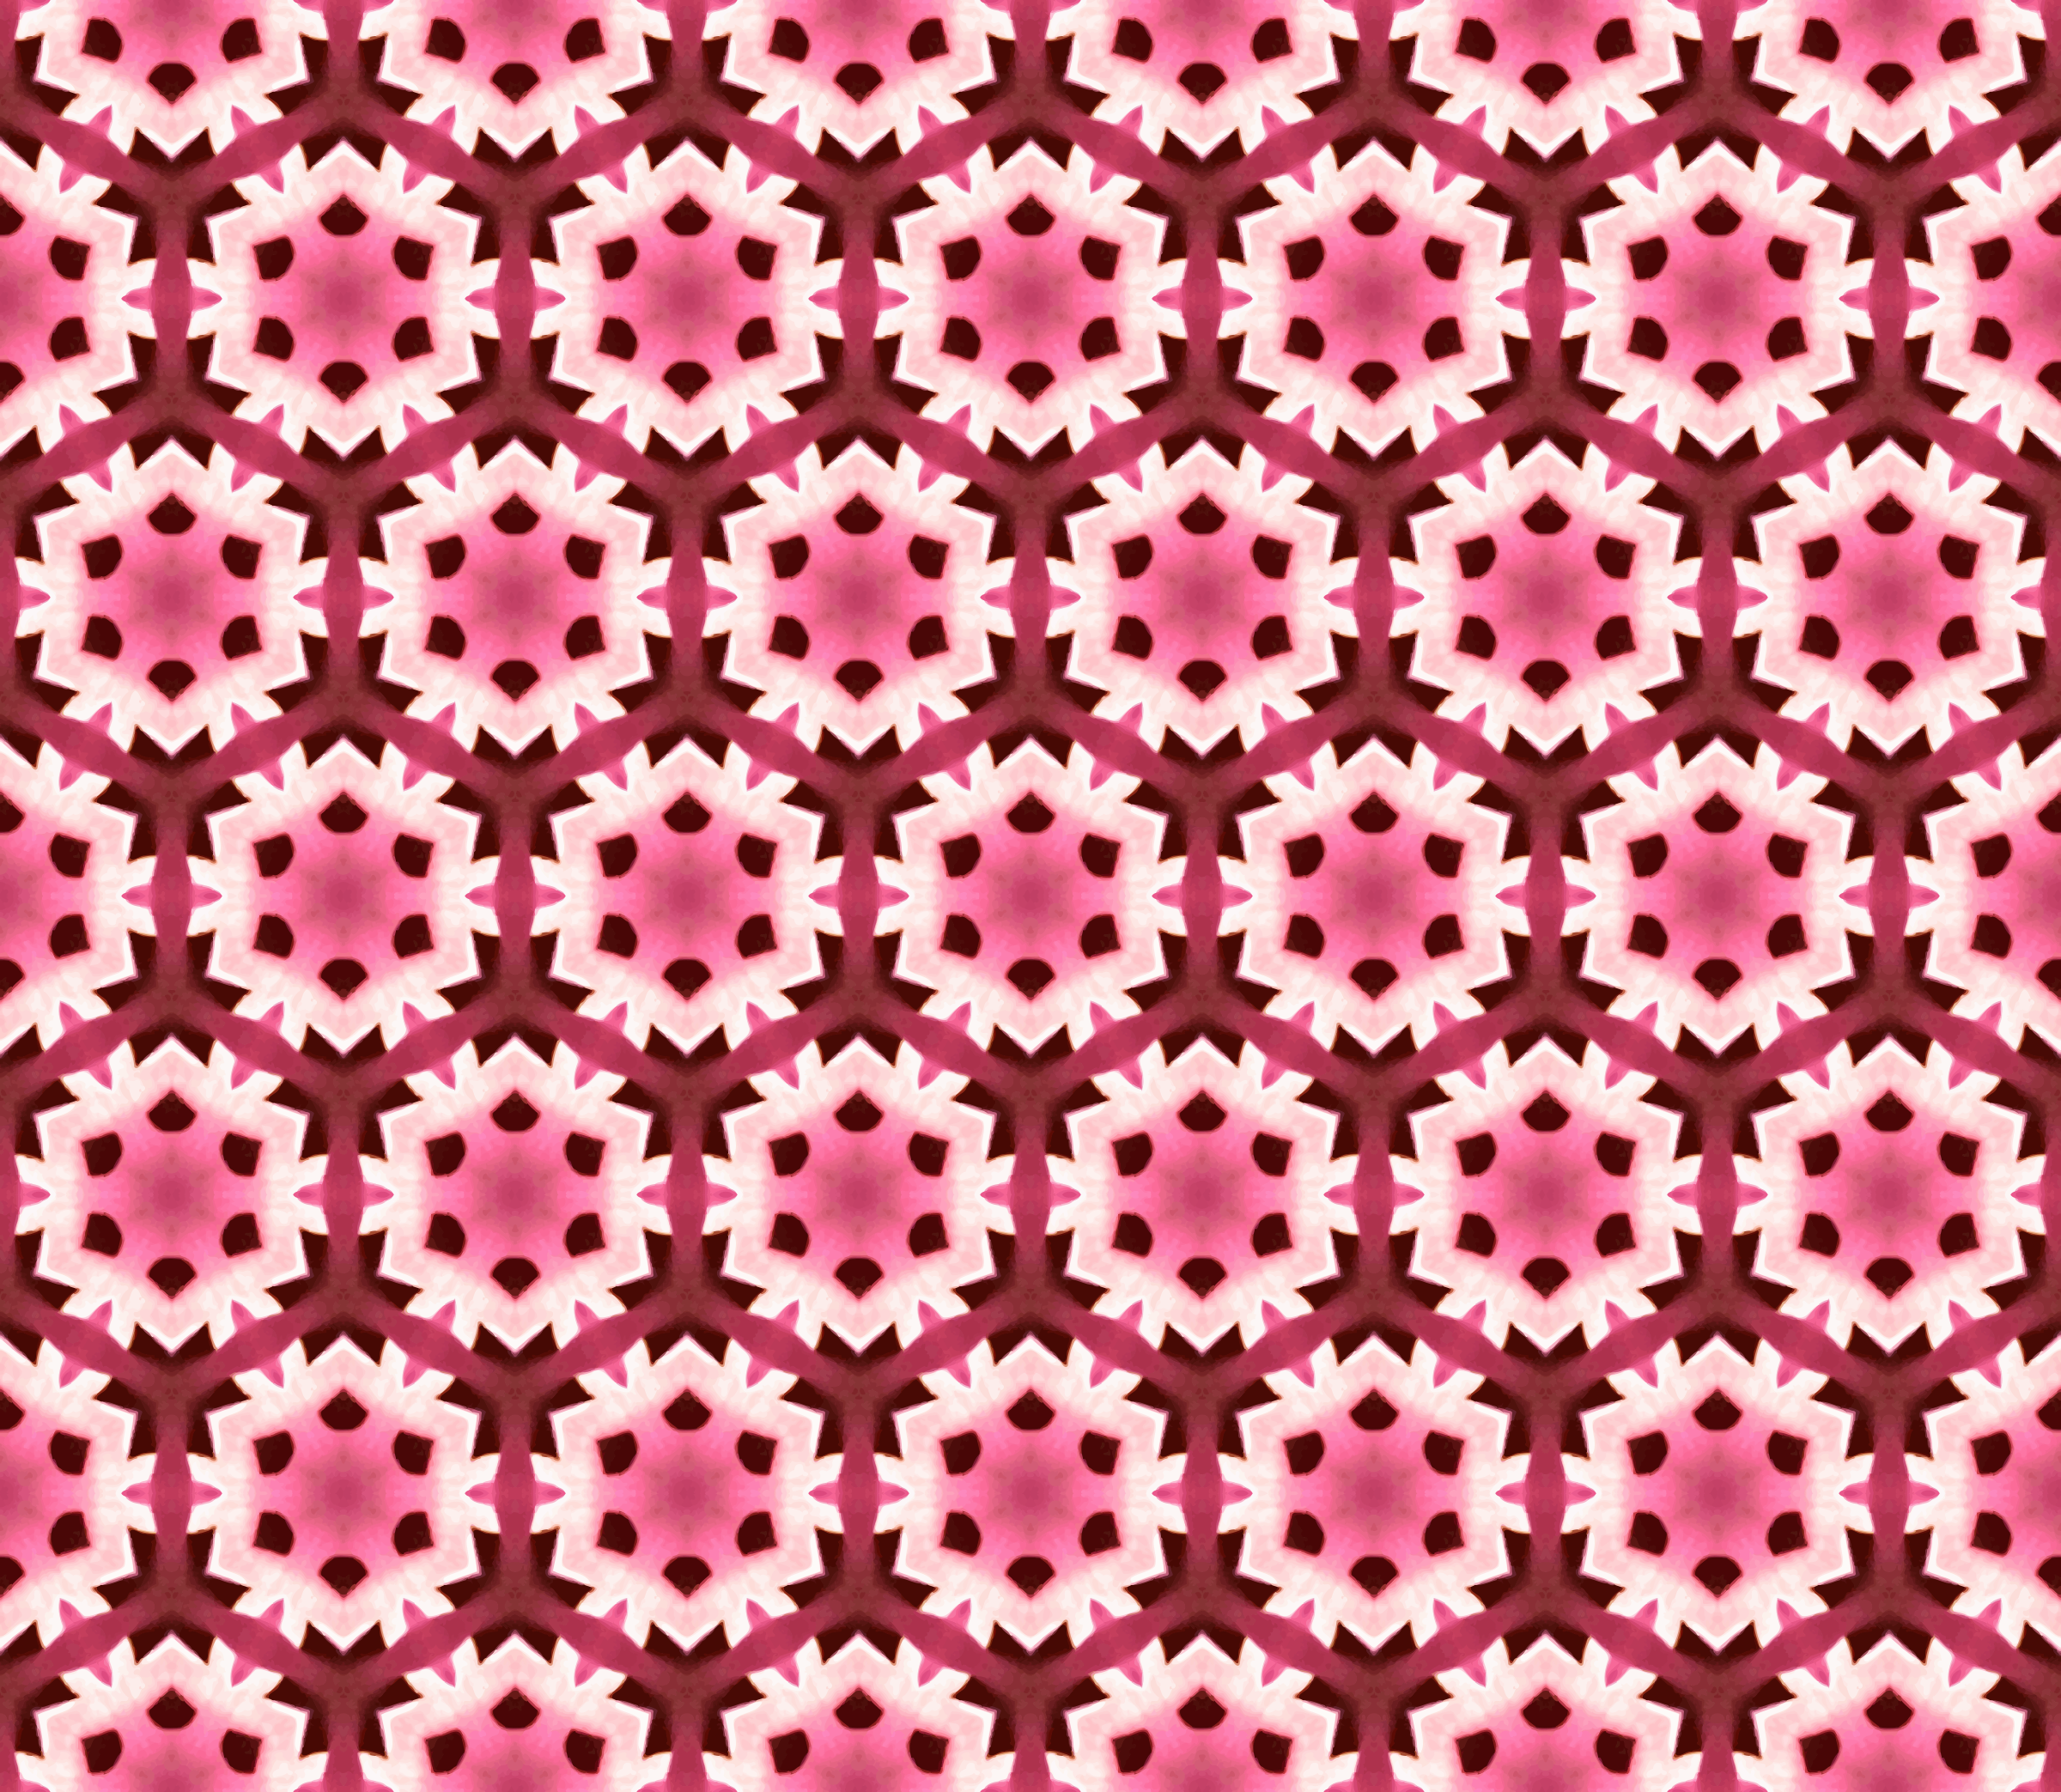 Background pattern 111 by Firkin